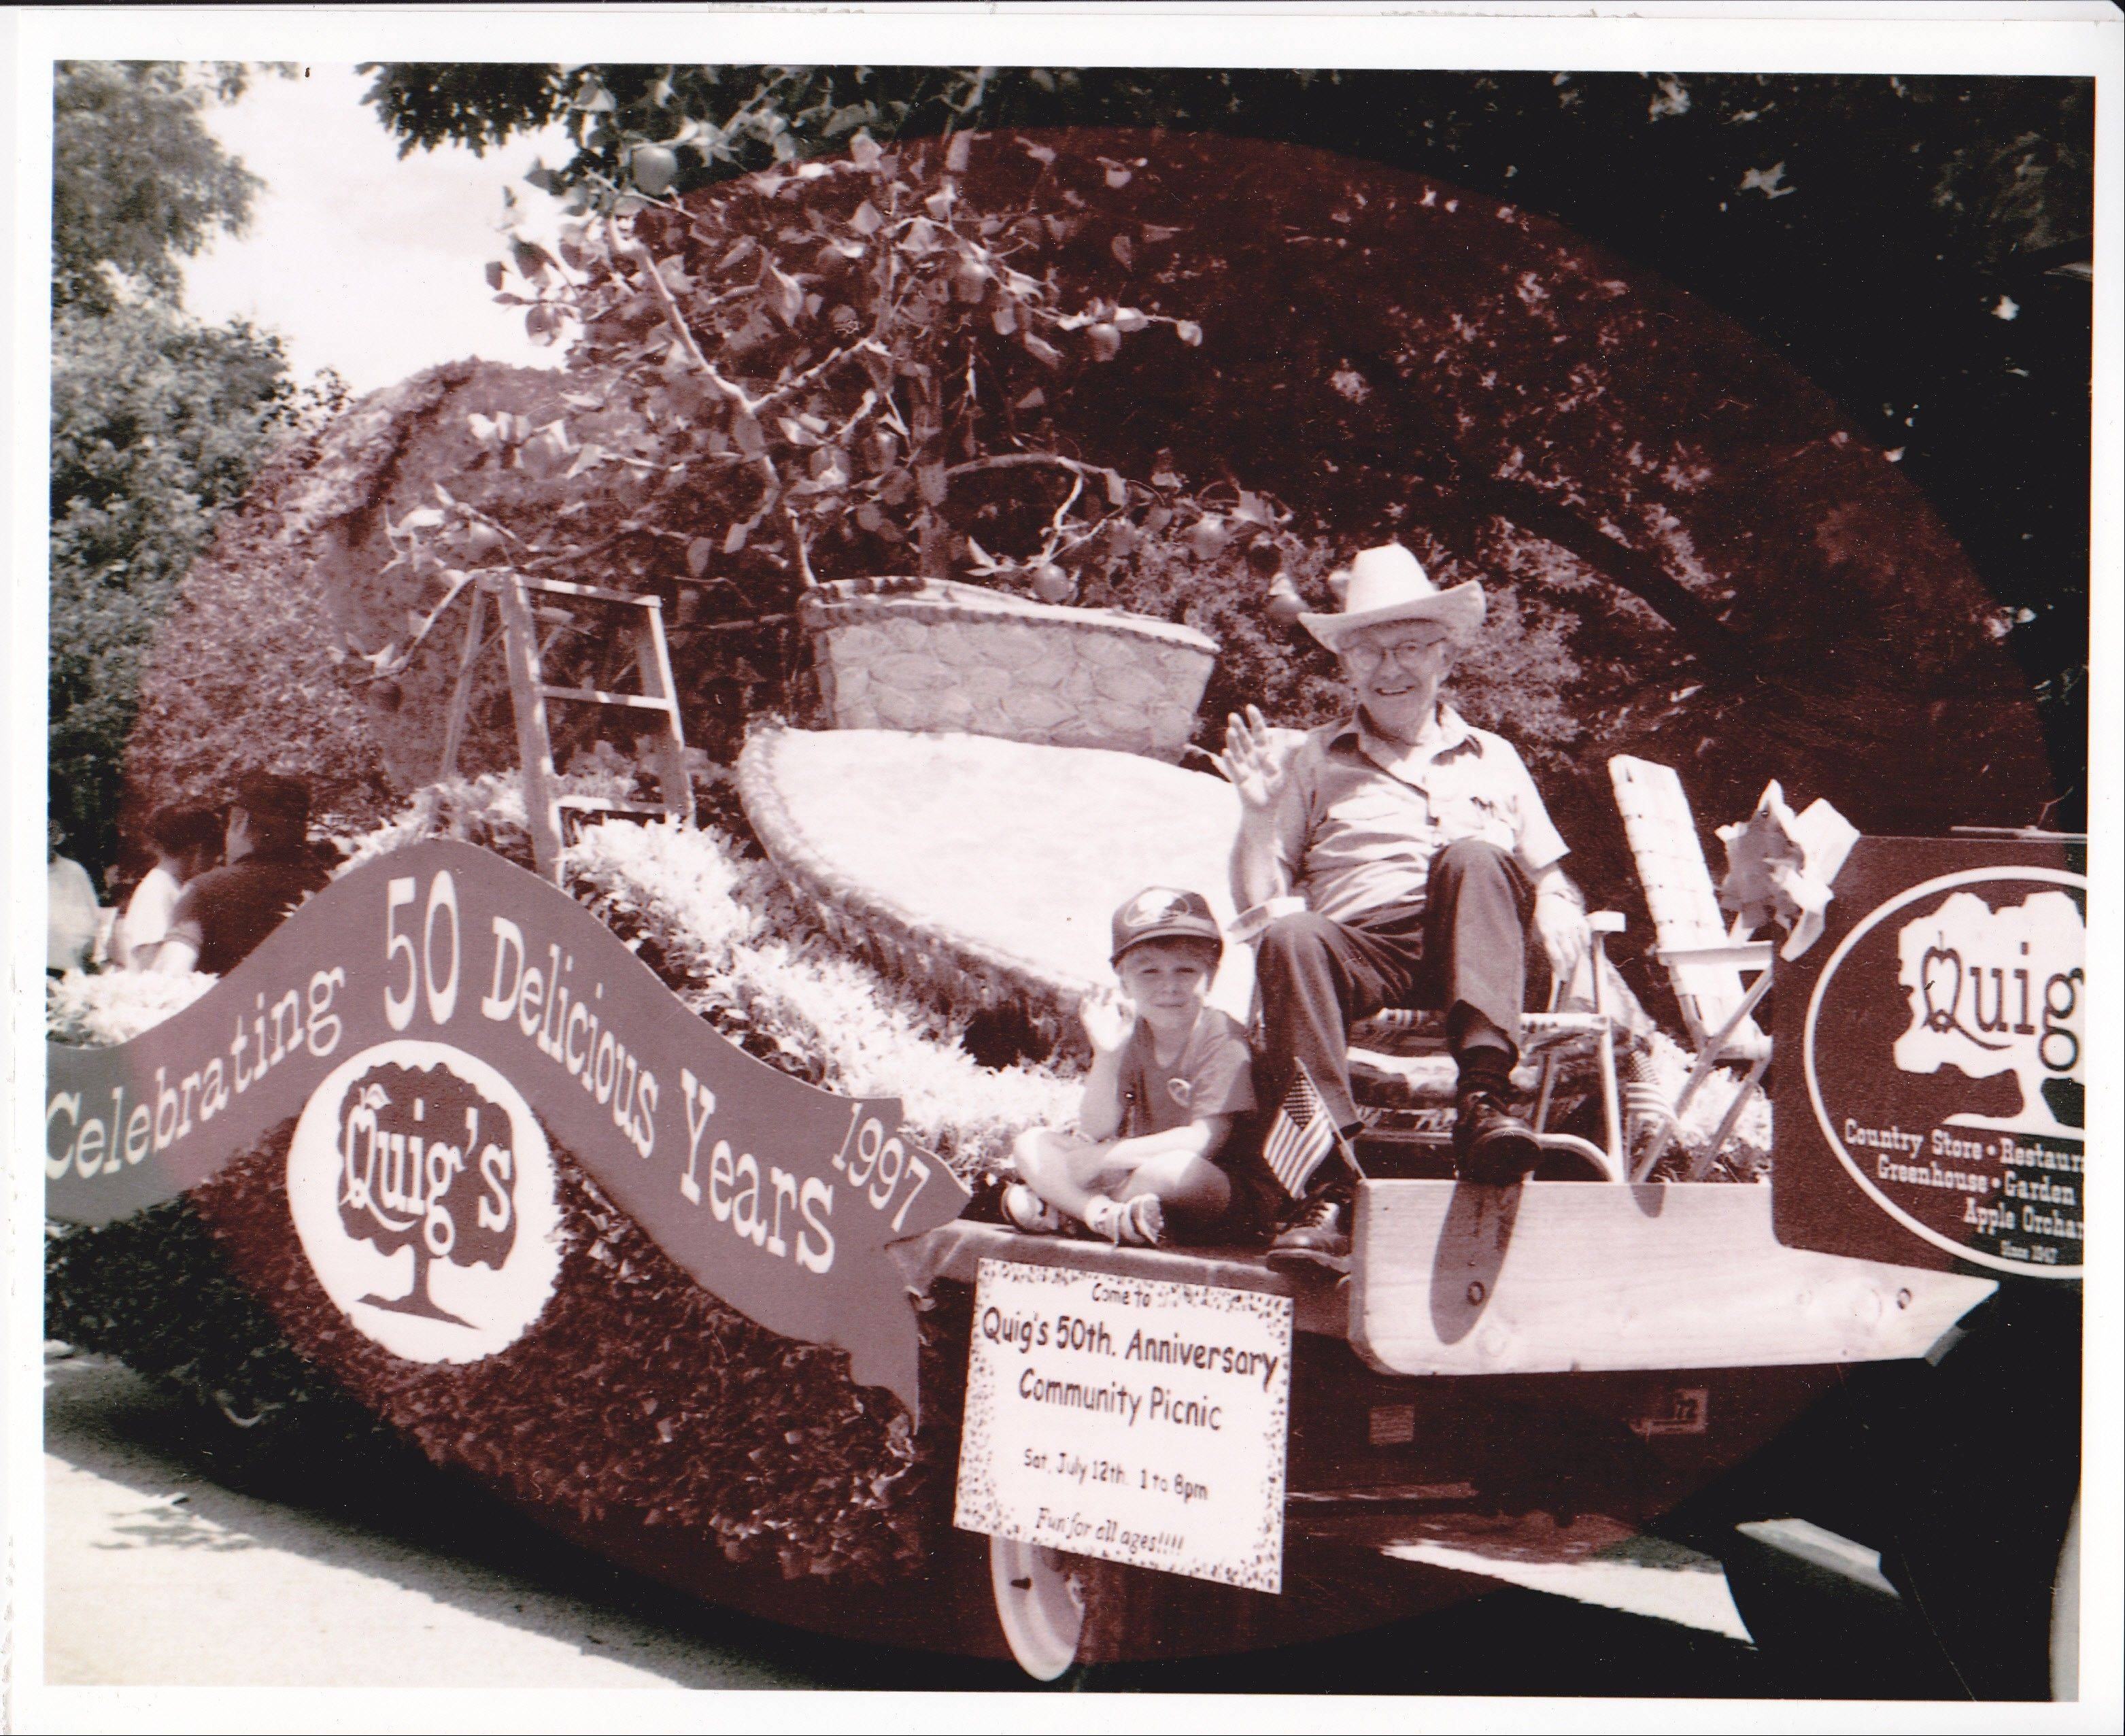 Robert Quig, founder of Quig's Orchard in Mundelein, rides a float in 1997 with his grandson Nathan in commemoration of the business' 50th anniversary. Quig, who died June 1, was known for his love of conversing with visitors.